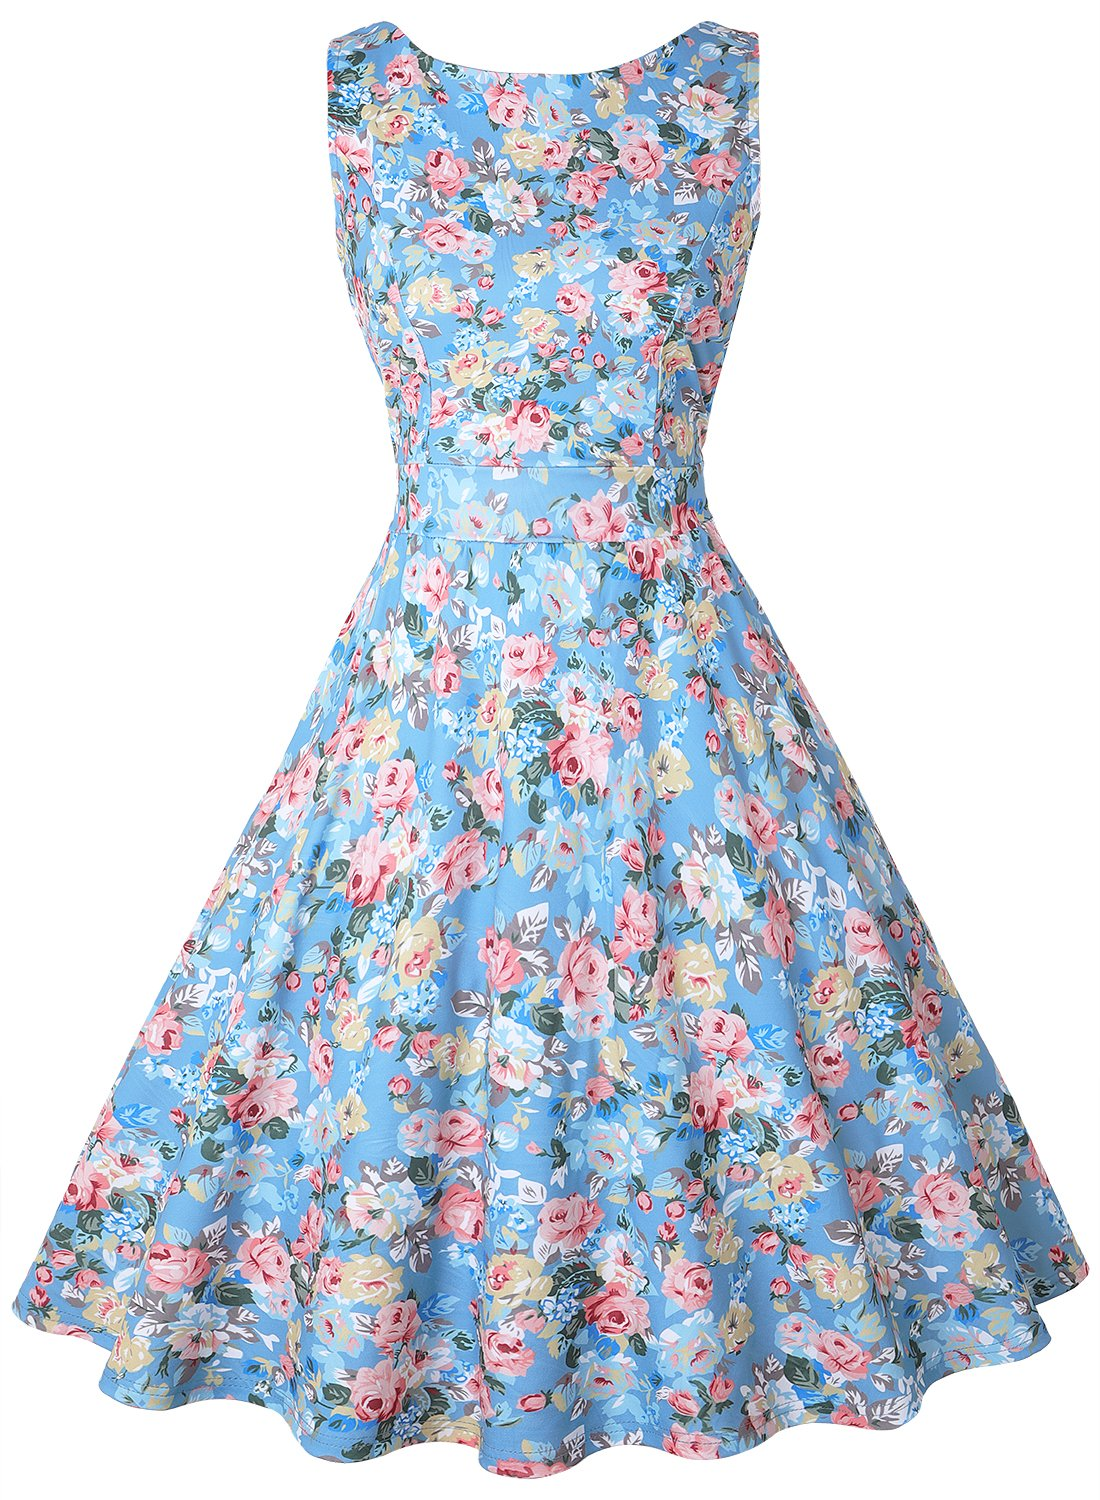 OLADY Women's Boatneck Sleeveless Vintage Fit and Flare Rockabilly Floral Dress (S, Blue Floral)